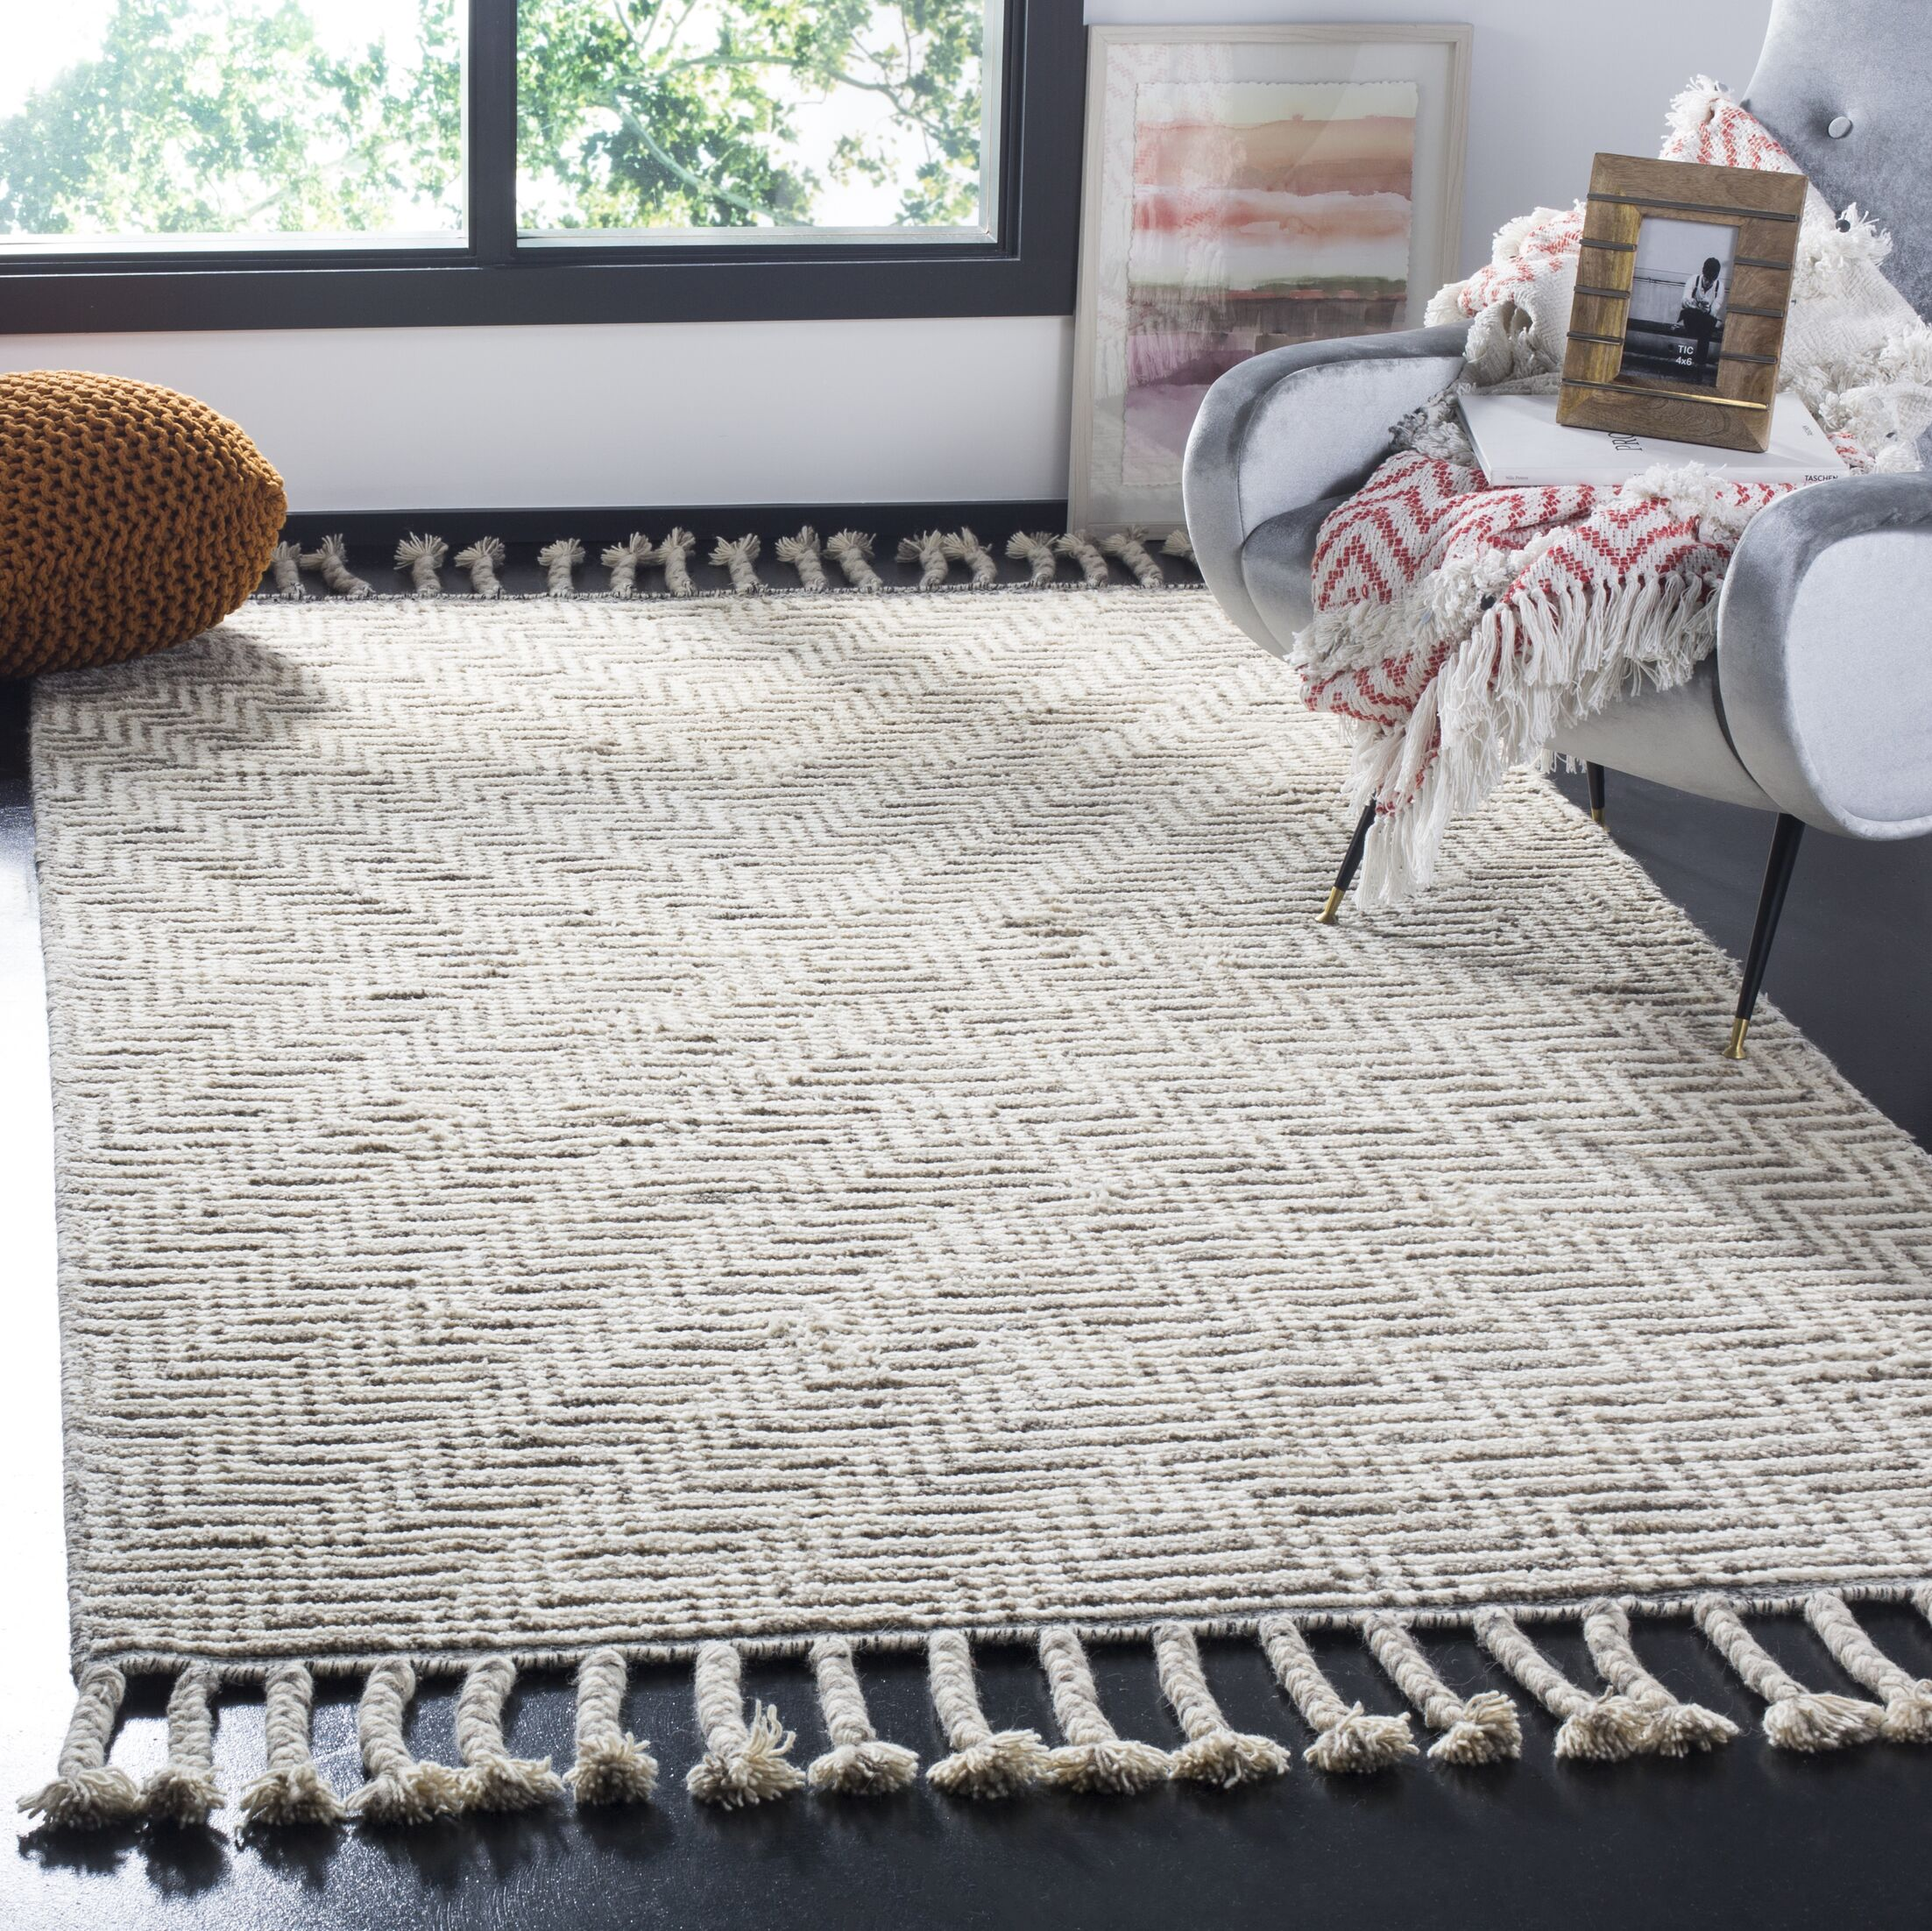 Piya Hand-Knotted Wool Ivory/Gray Area Rug Rug Size: Rectangle 8' x 10'